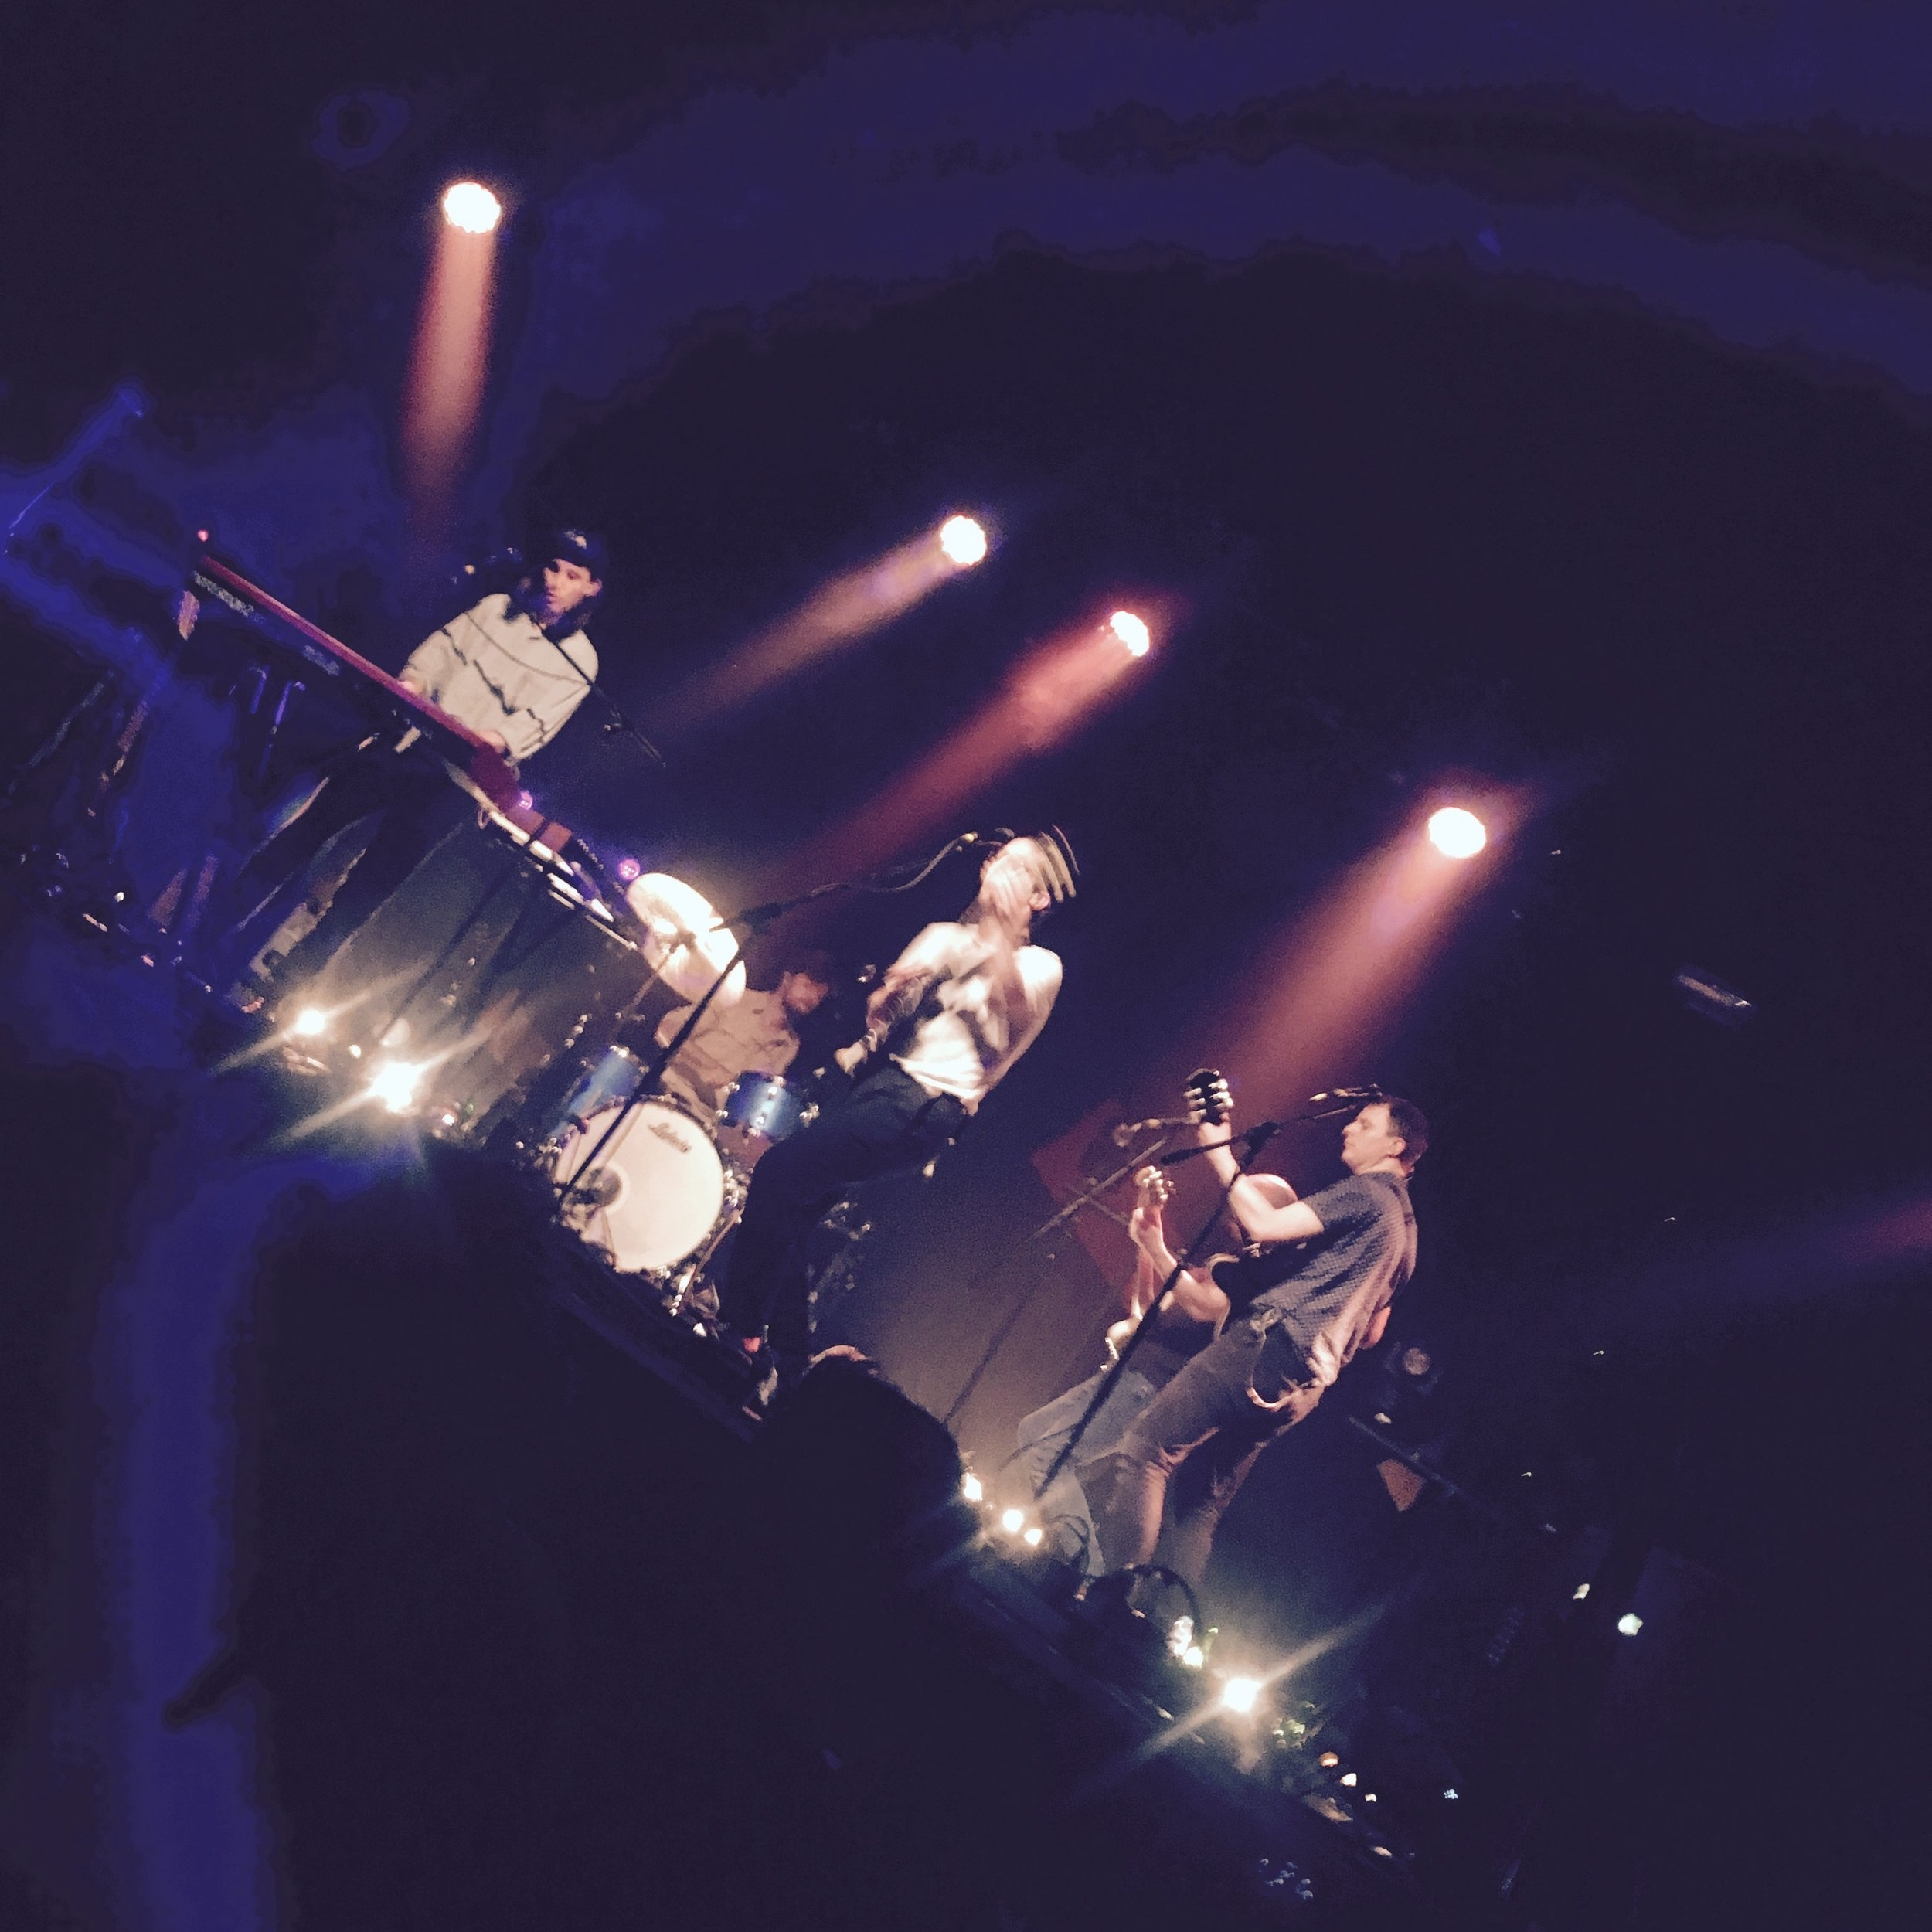 Take a bow! Dan Croll and band learning from their mistakes...